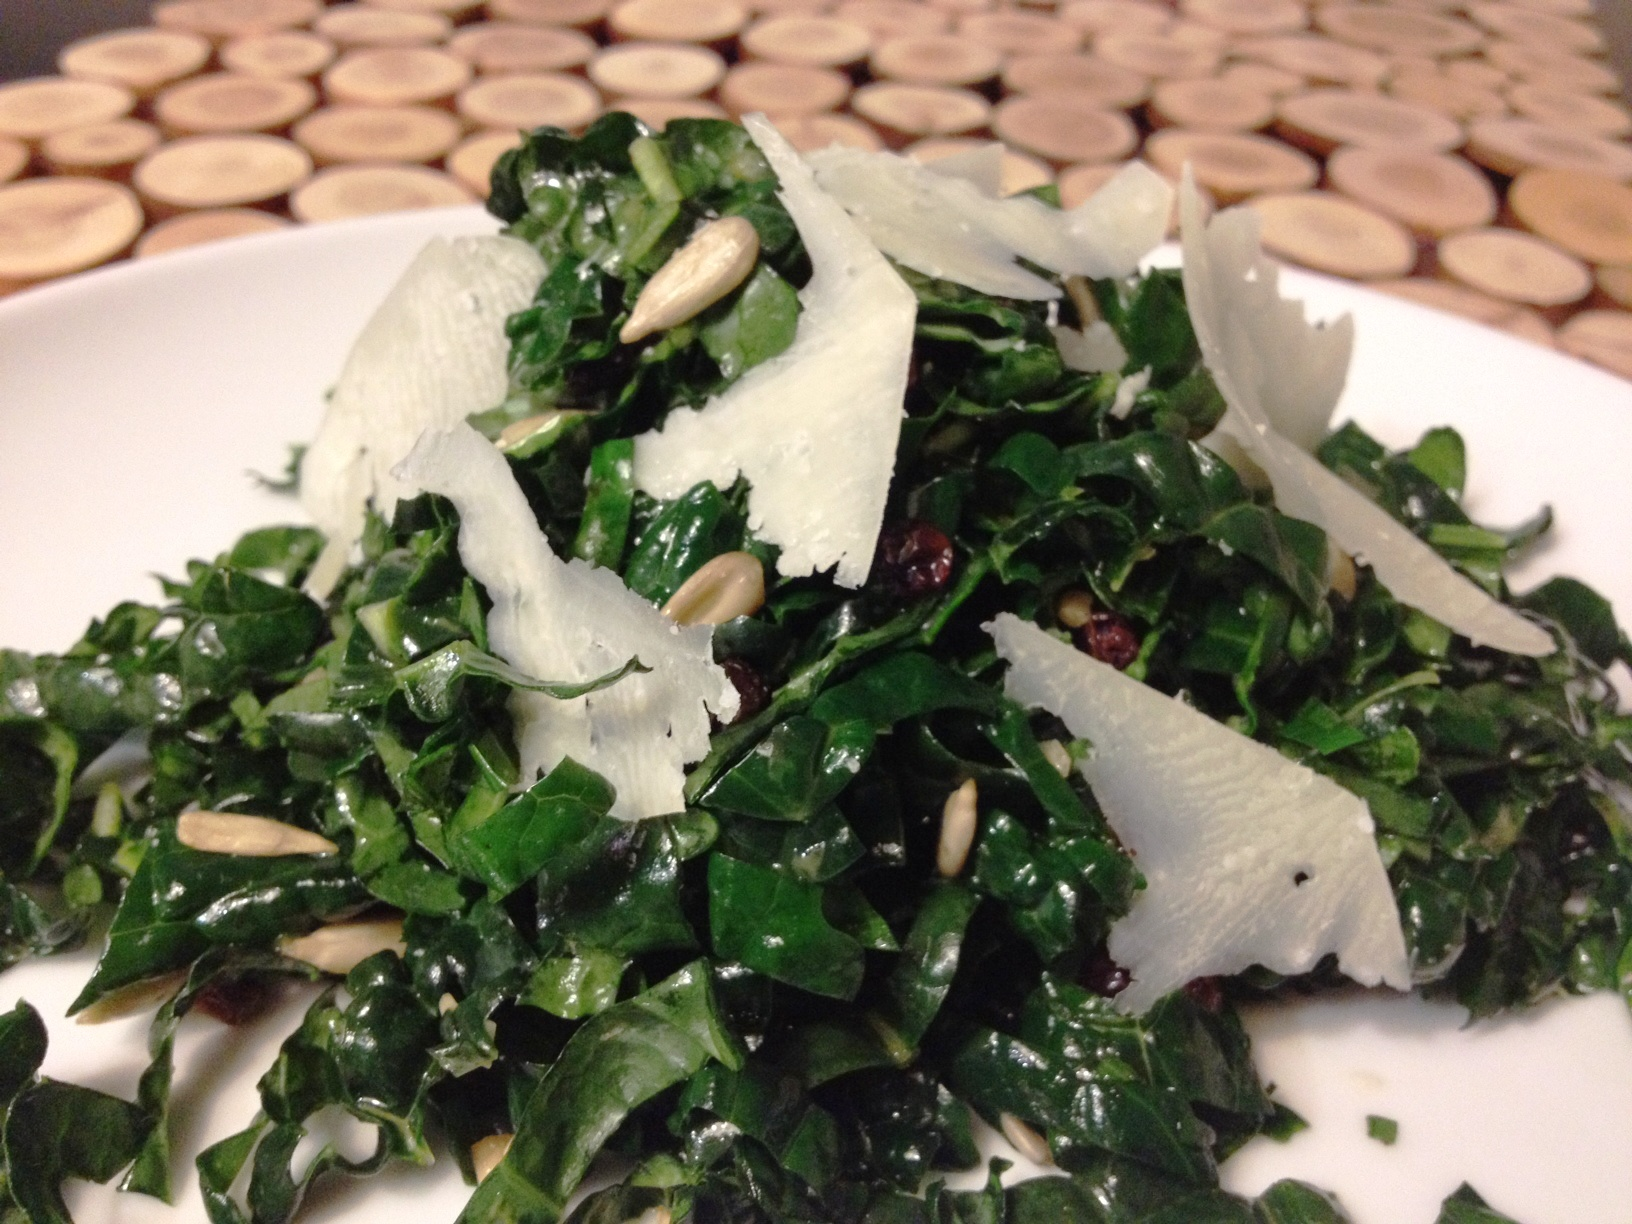 Tuscan Kale Salad with Currants and Parmesan